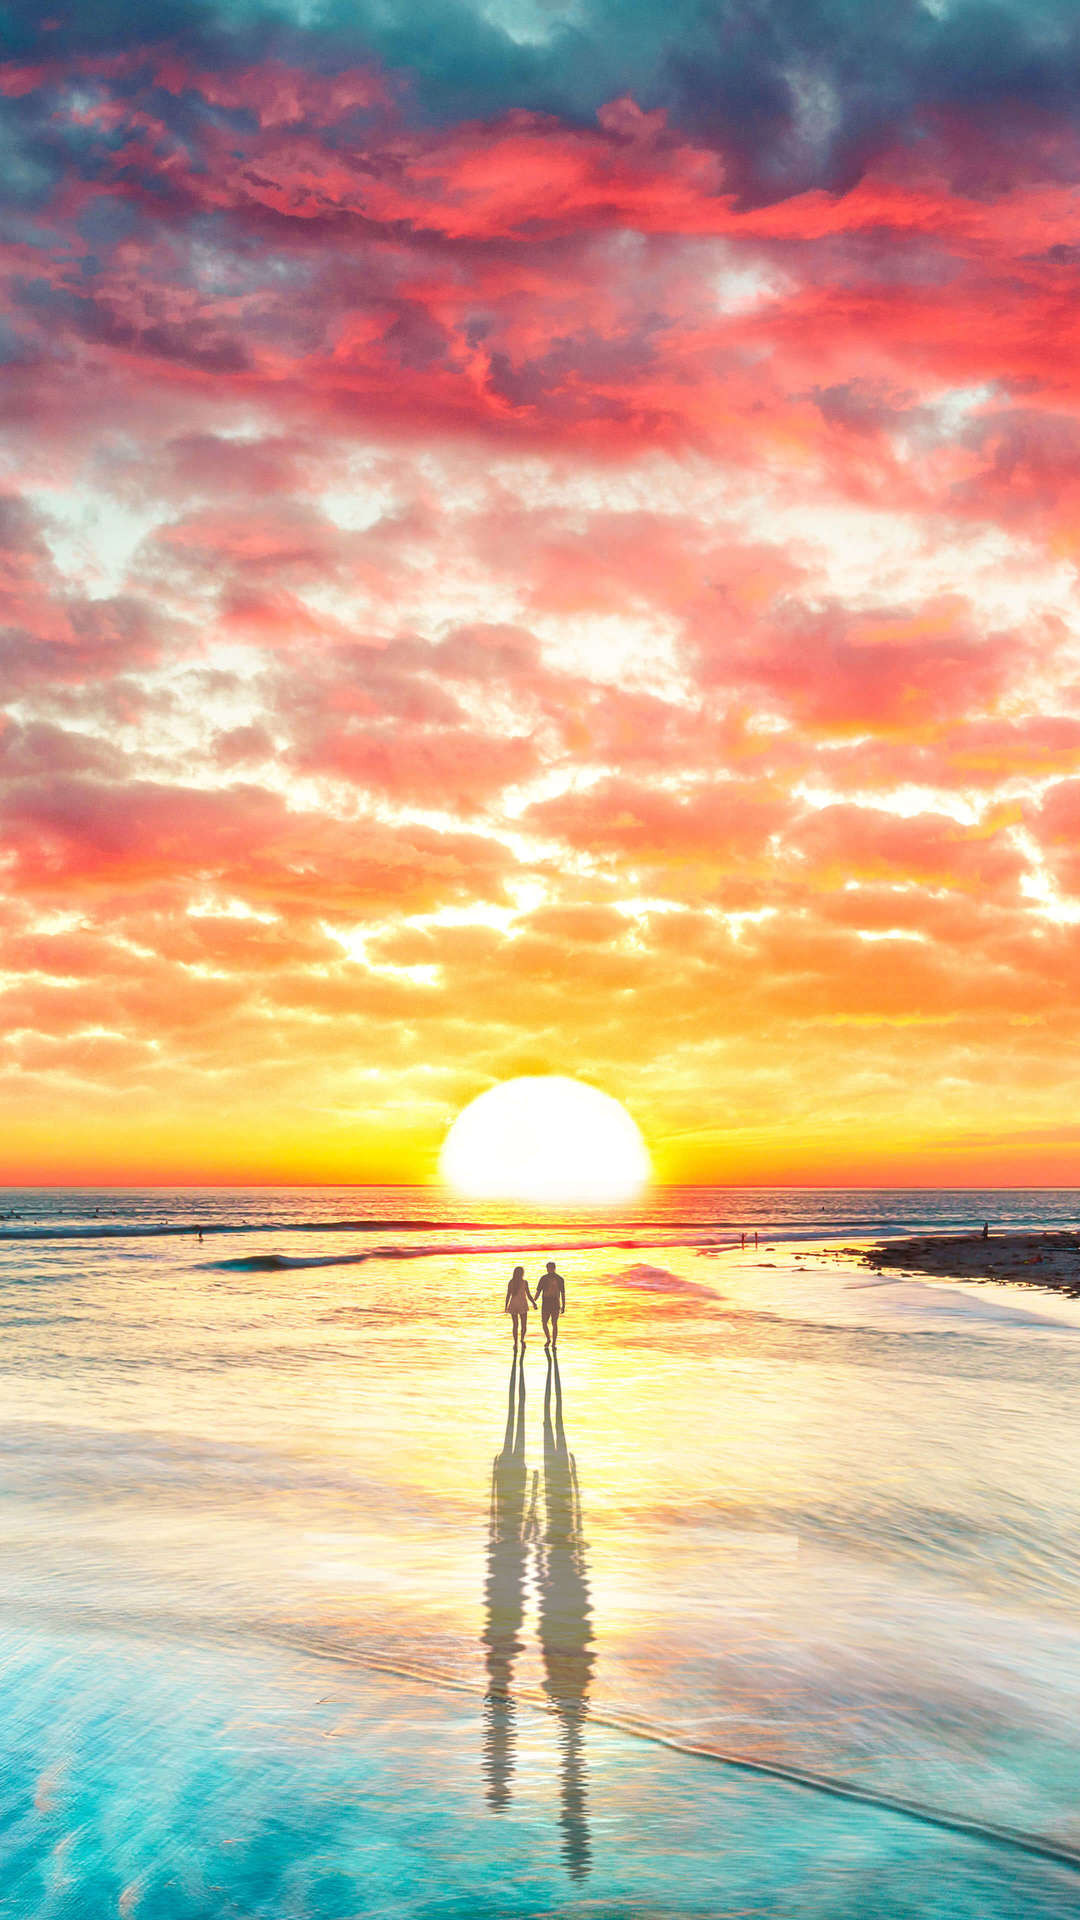 Sunset Beach Iphone Wallpaper